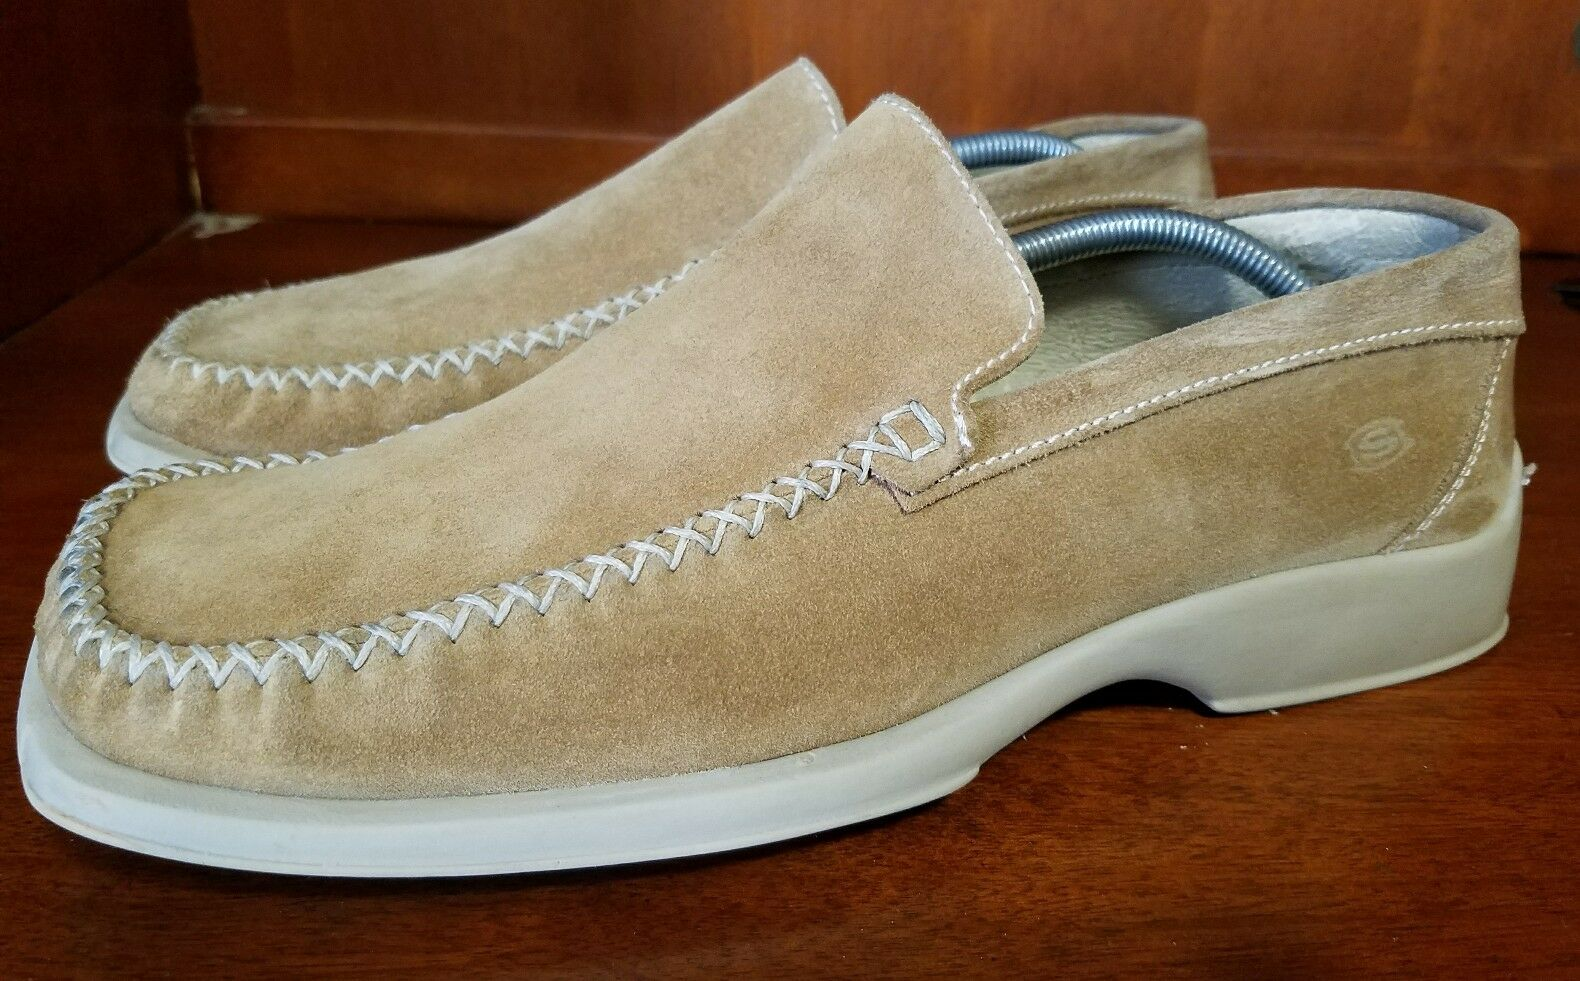 Skechers Collection Men Suede Casual Loafers Size 9.5 M ITALY MADE